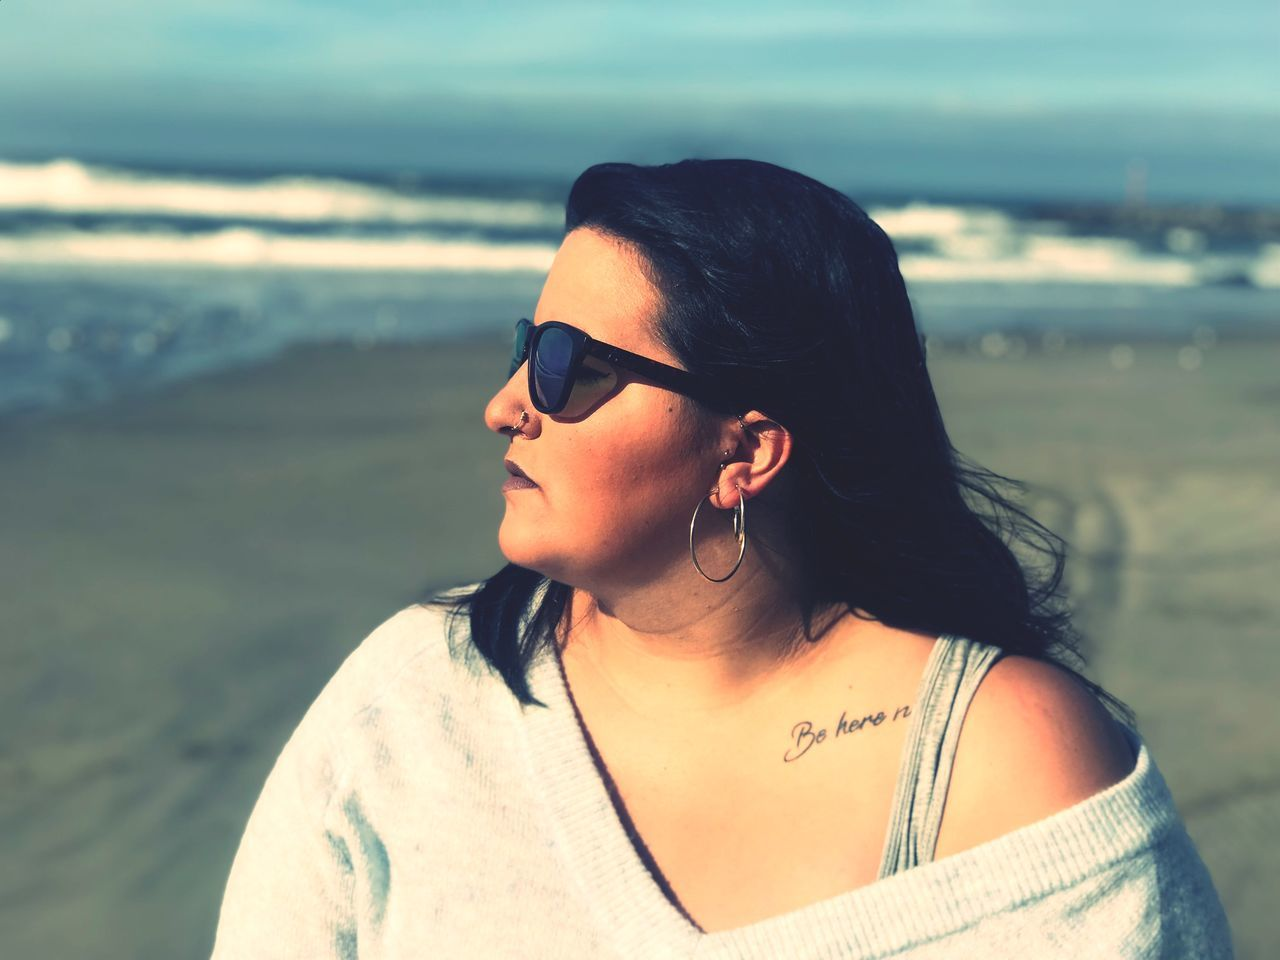 Overweight woman looking away at beach